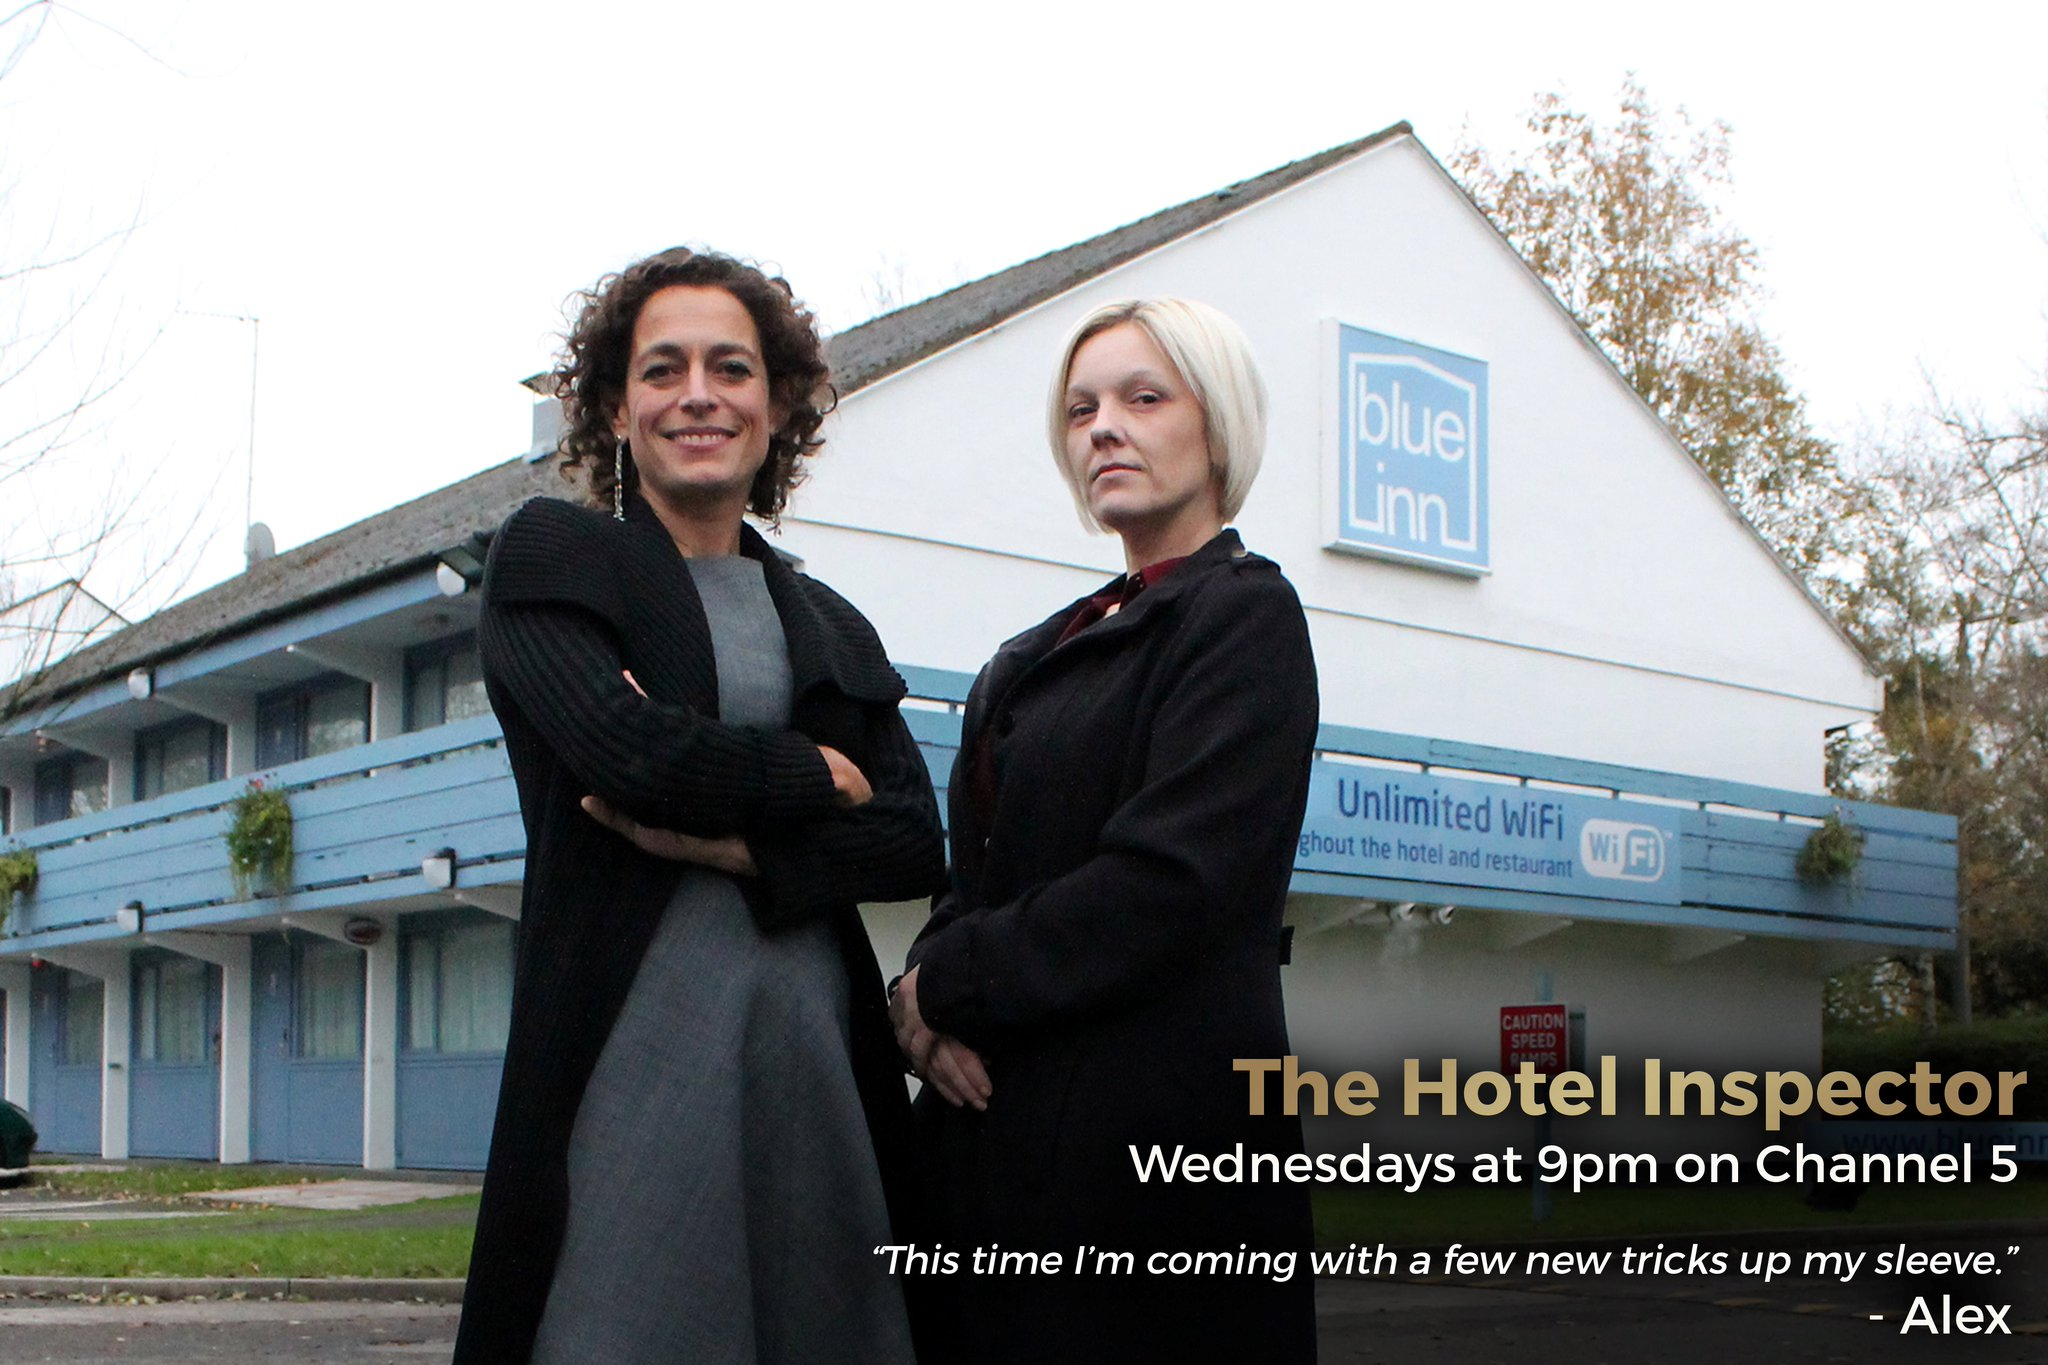 Hotel Inspector Episode 1 image courtesy of twitter.com/twofourtweets